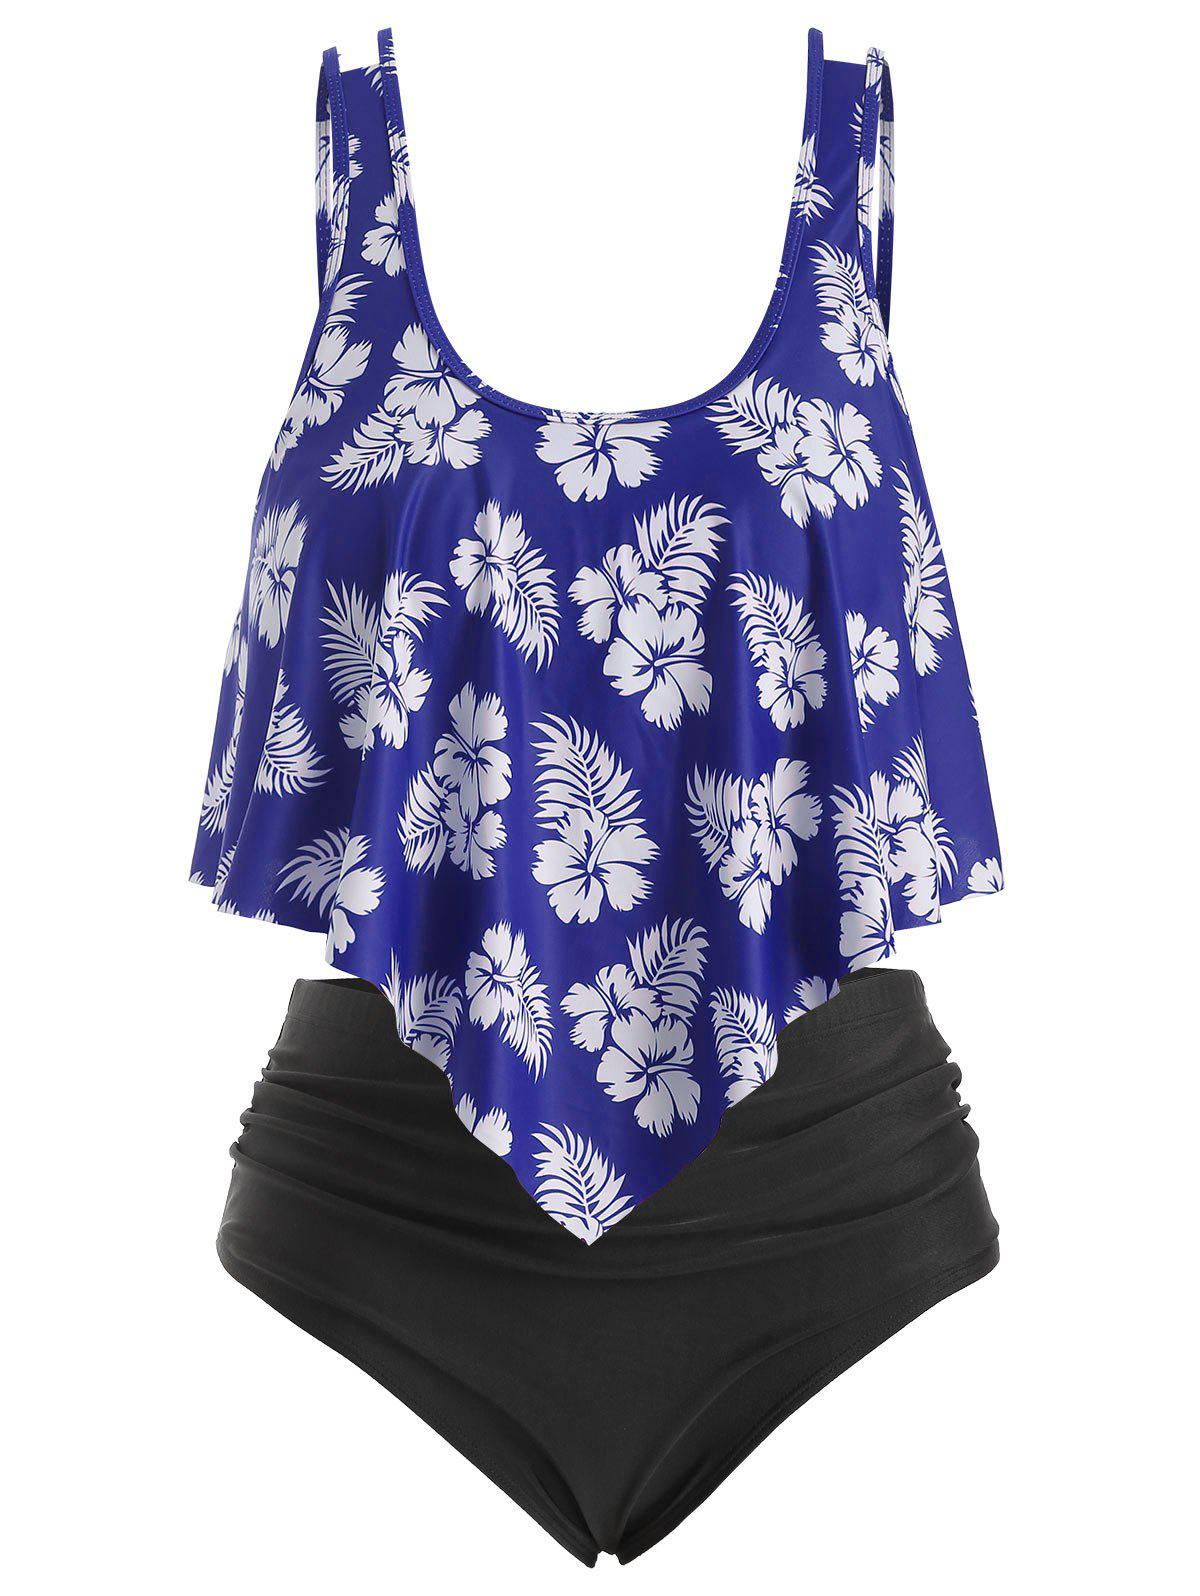 Latest Overlay Ruffles Floral Leaves Print Plus Size Tankini Swimsuit